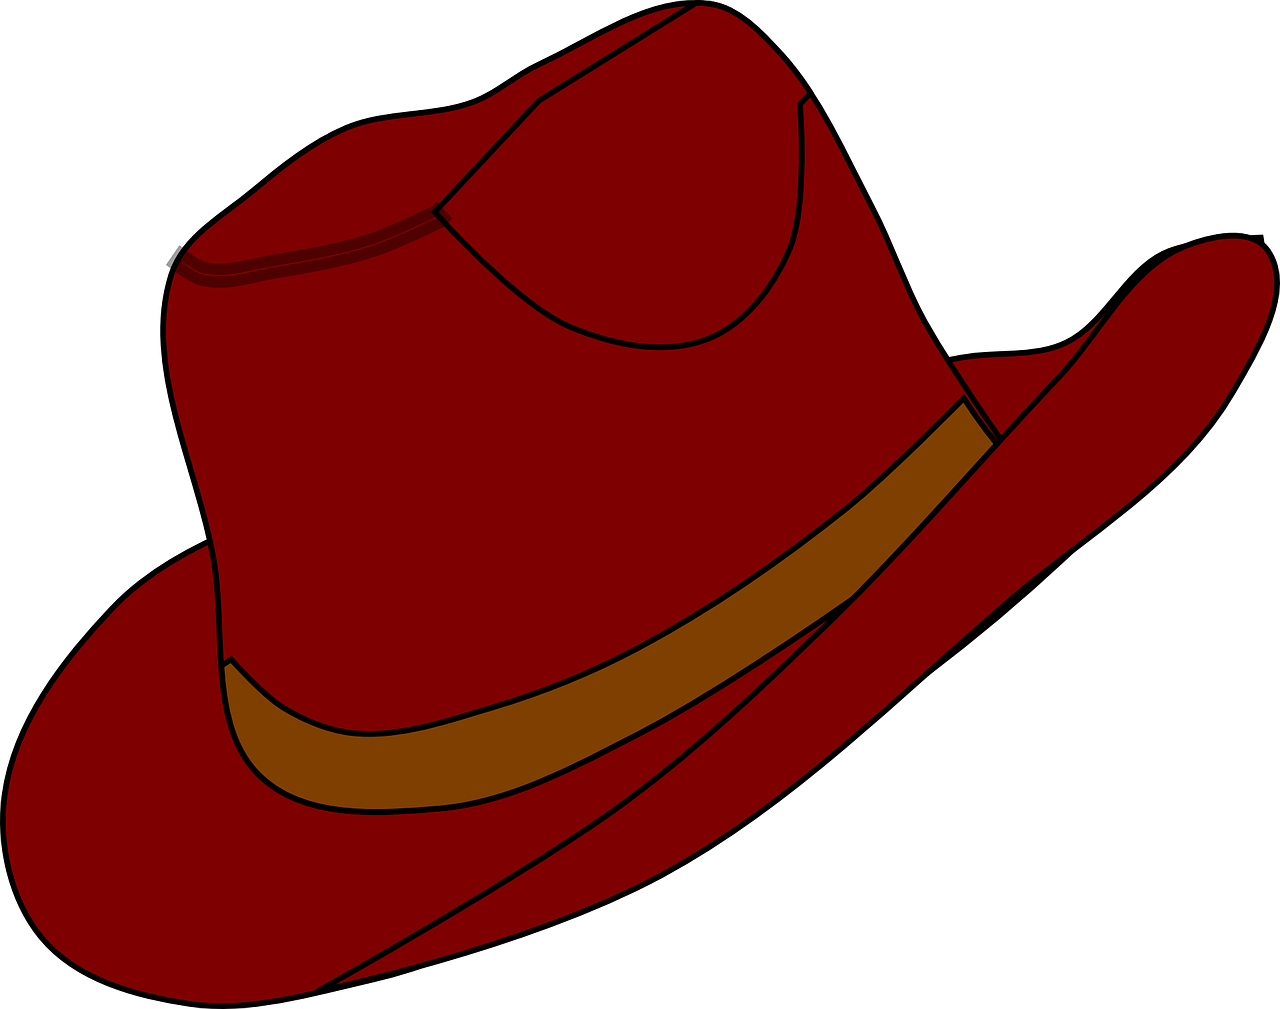 Clipart of a hat jpg royalty free stock Free Hat Cliparts, Download Free Clip Art, Free Clip Art on Clipart ... jpg royalty free stock